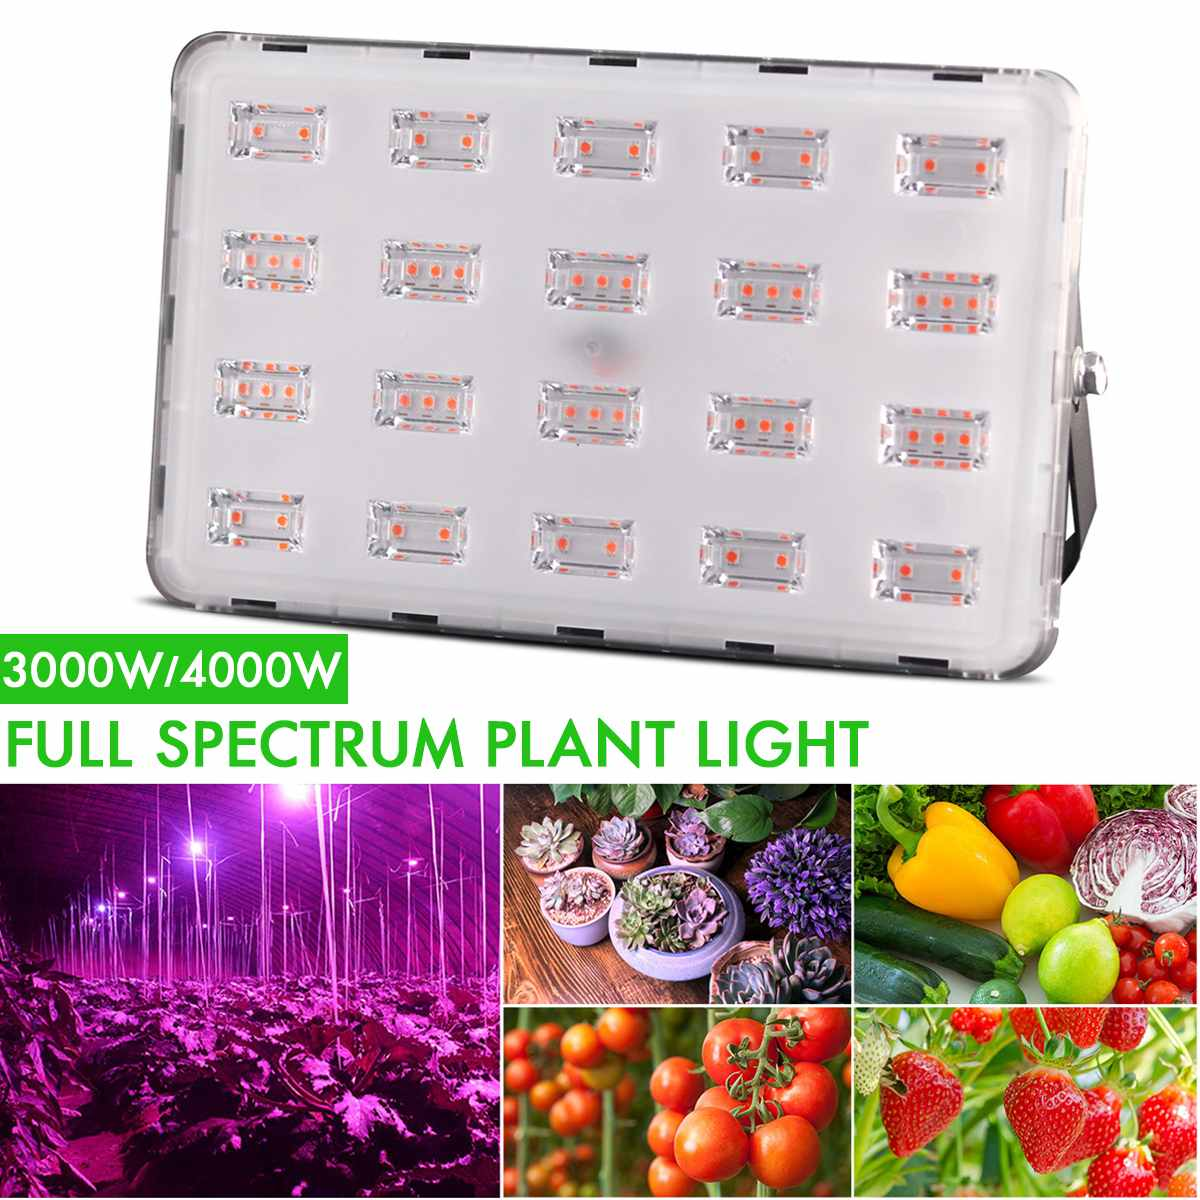 <font><b>3000w</b></font>/4000W <font><b>LED</b></font> <font><b>grow</b></font> <font><b>Light</b></font> Phyto Lamps Full Spectrum <font><b>Grow</b></font> lamps For indoor seedling tent Greenhouse flower fitolamp plant lamp image